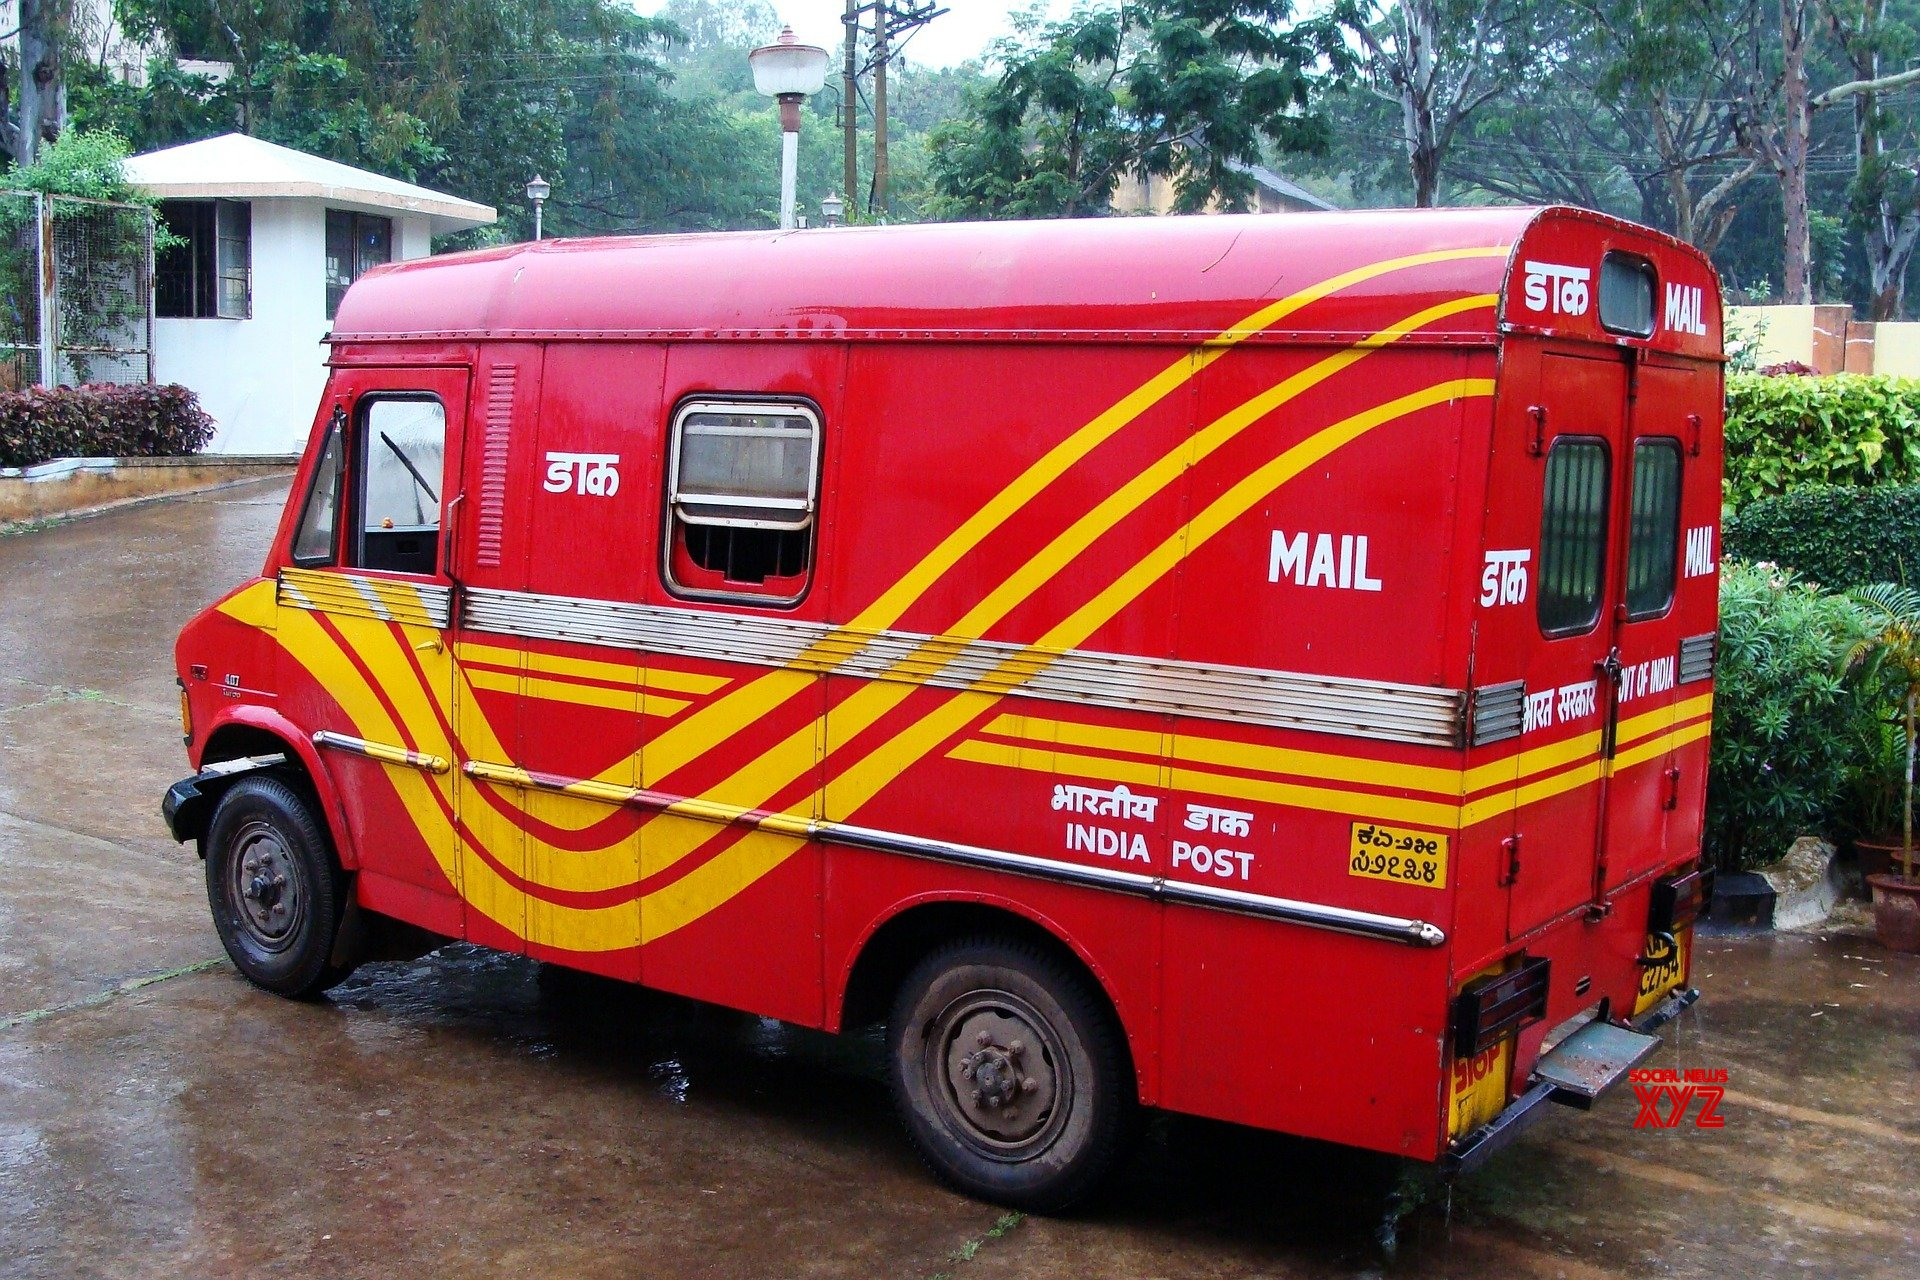 India Post delivers 2,000 tonnes of medicines, equipment amid lockdown